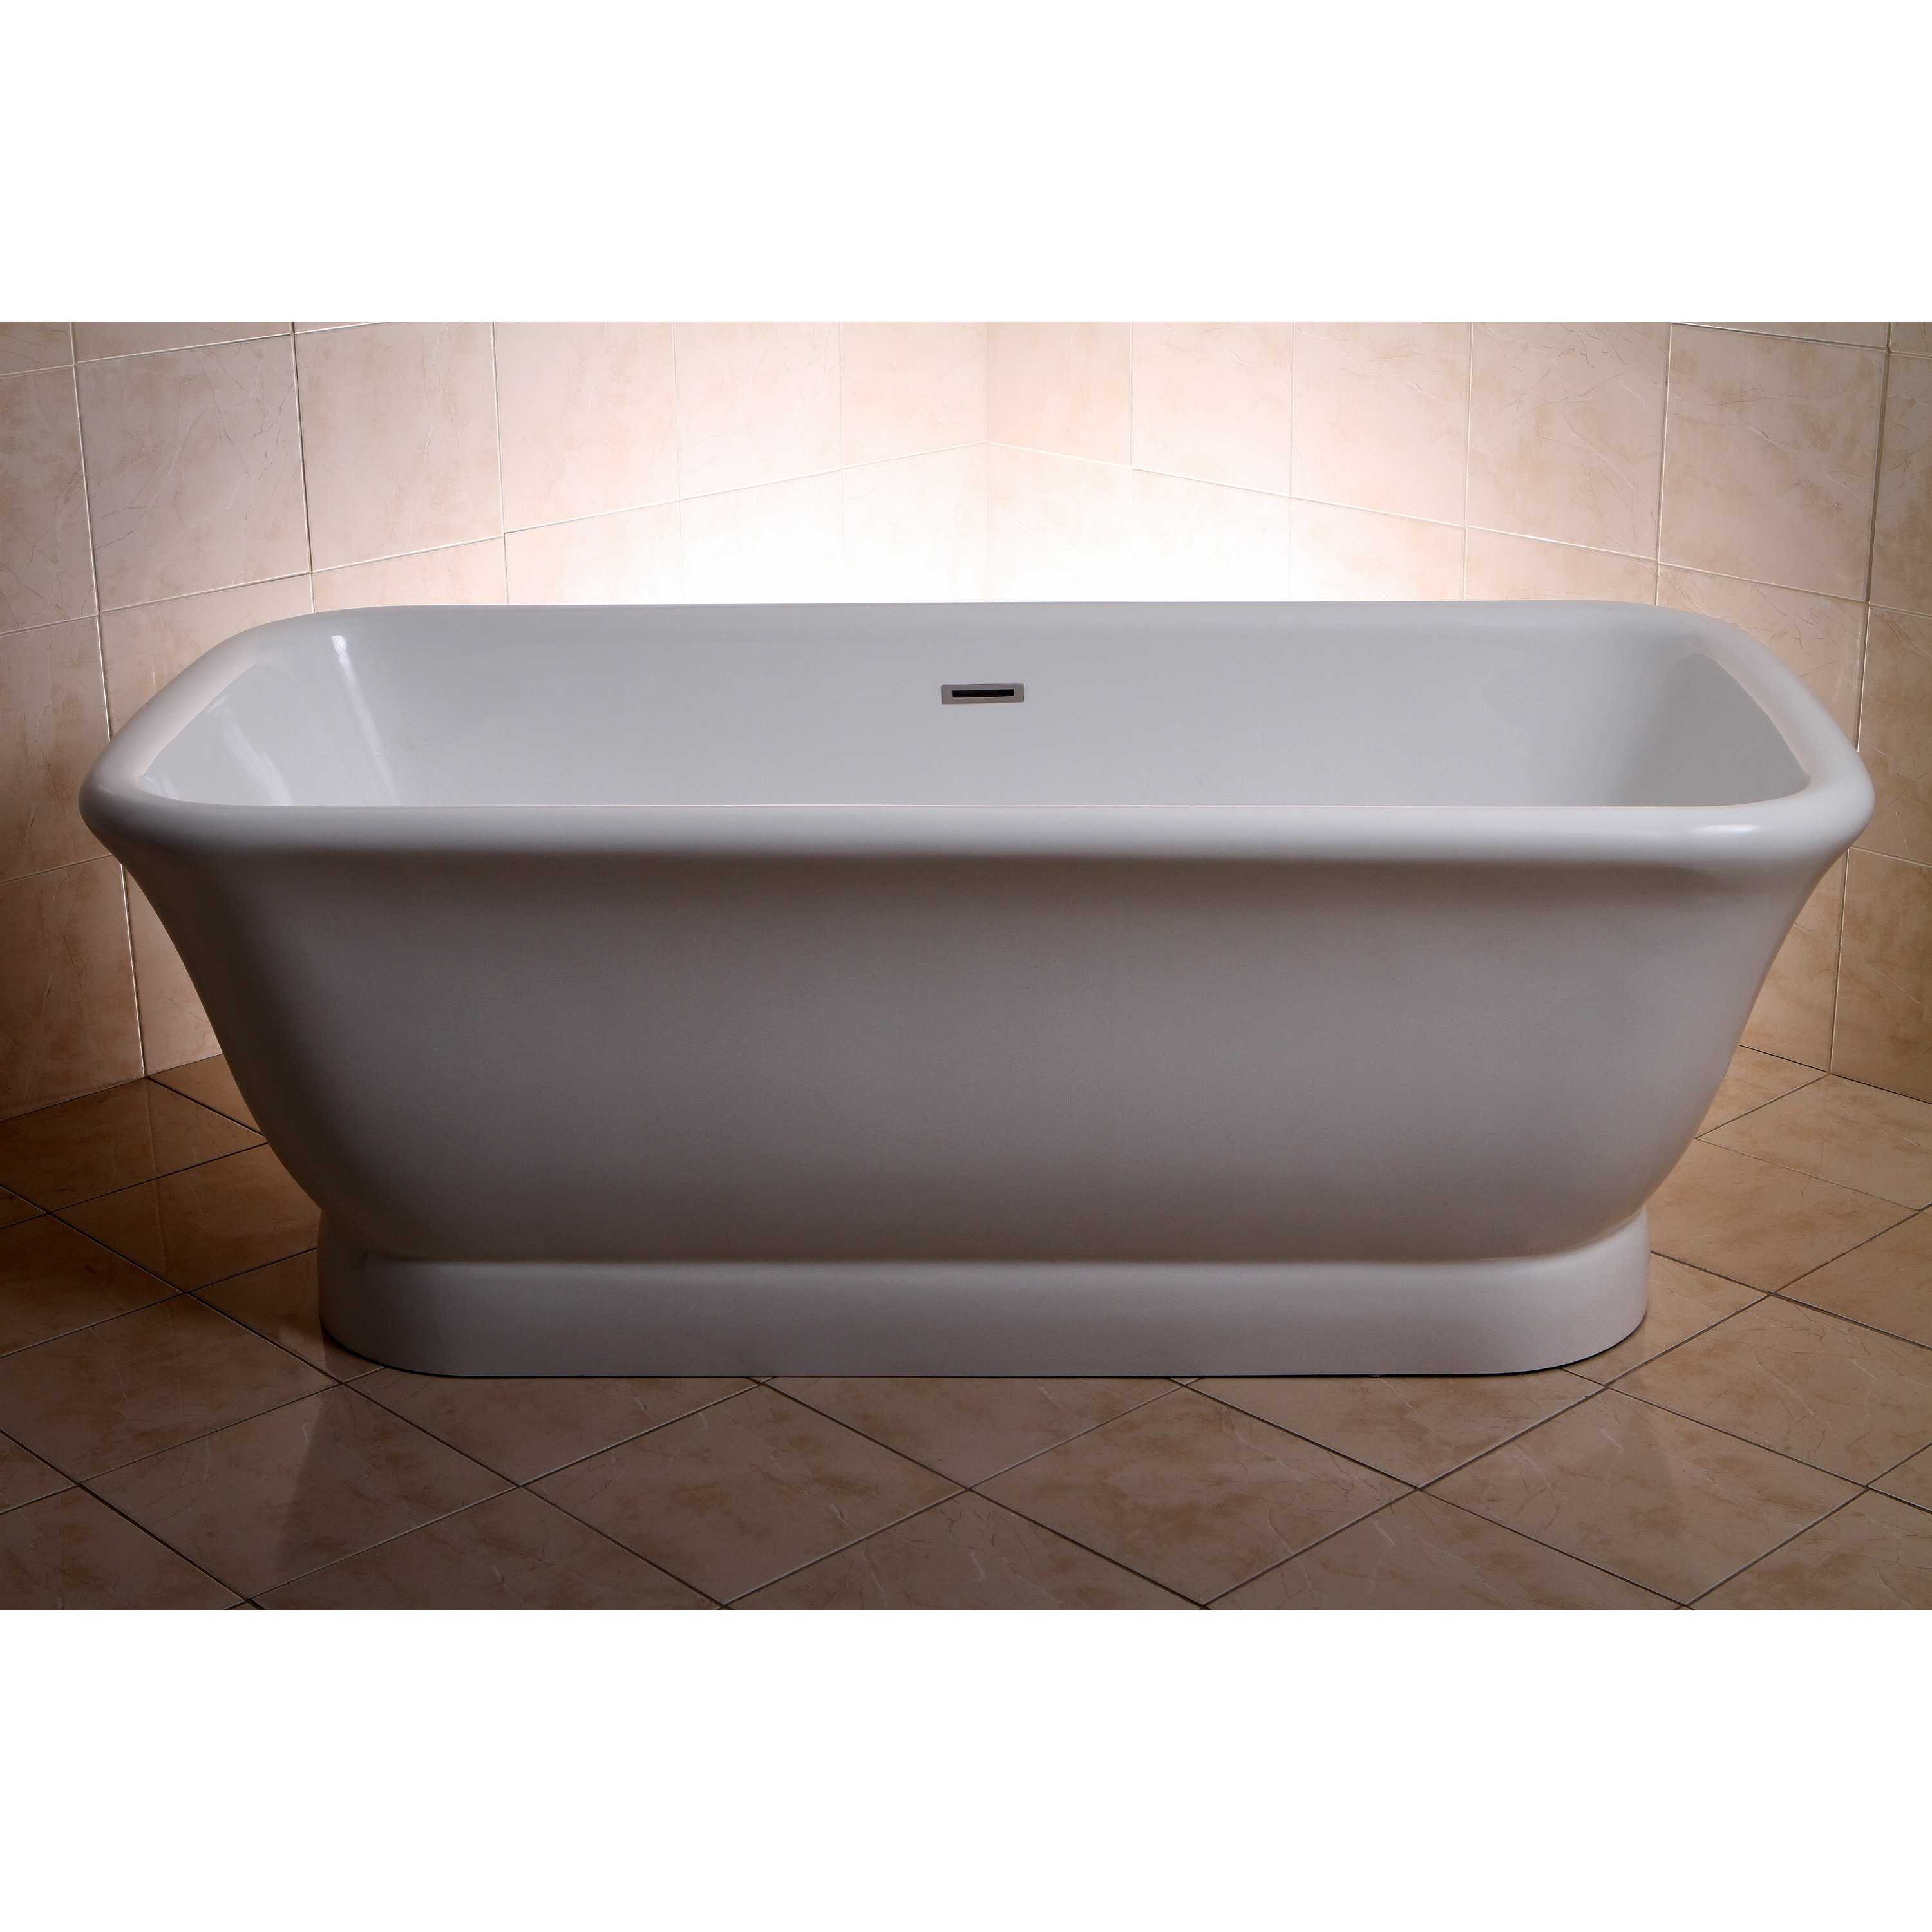 Picture of: Shop Black Friday Deals On Large Contemporary Double Ended Acrylic 71 Inch Pedestal Bathtub On Sale Overstock 9937550